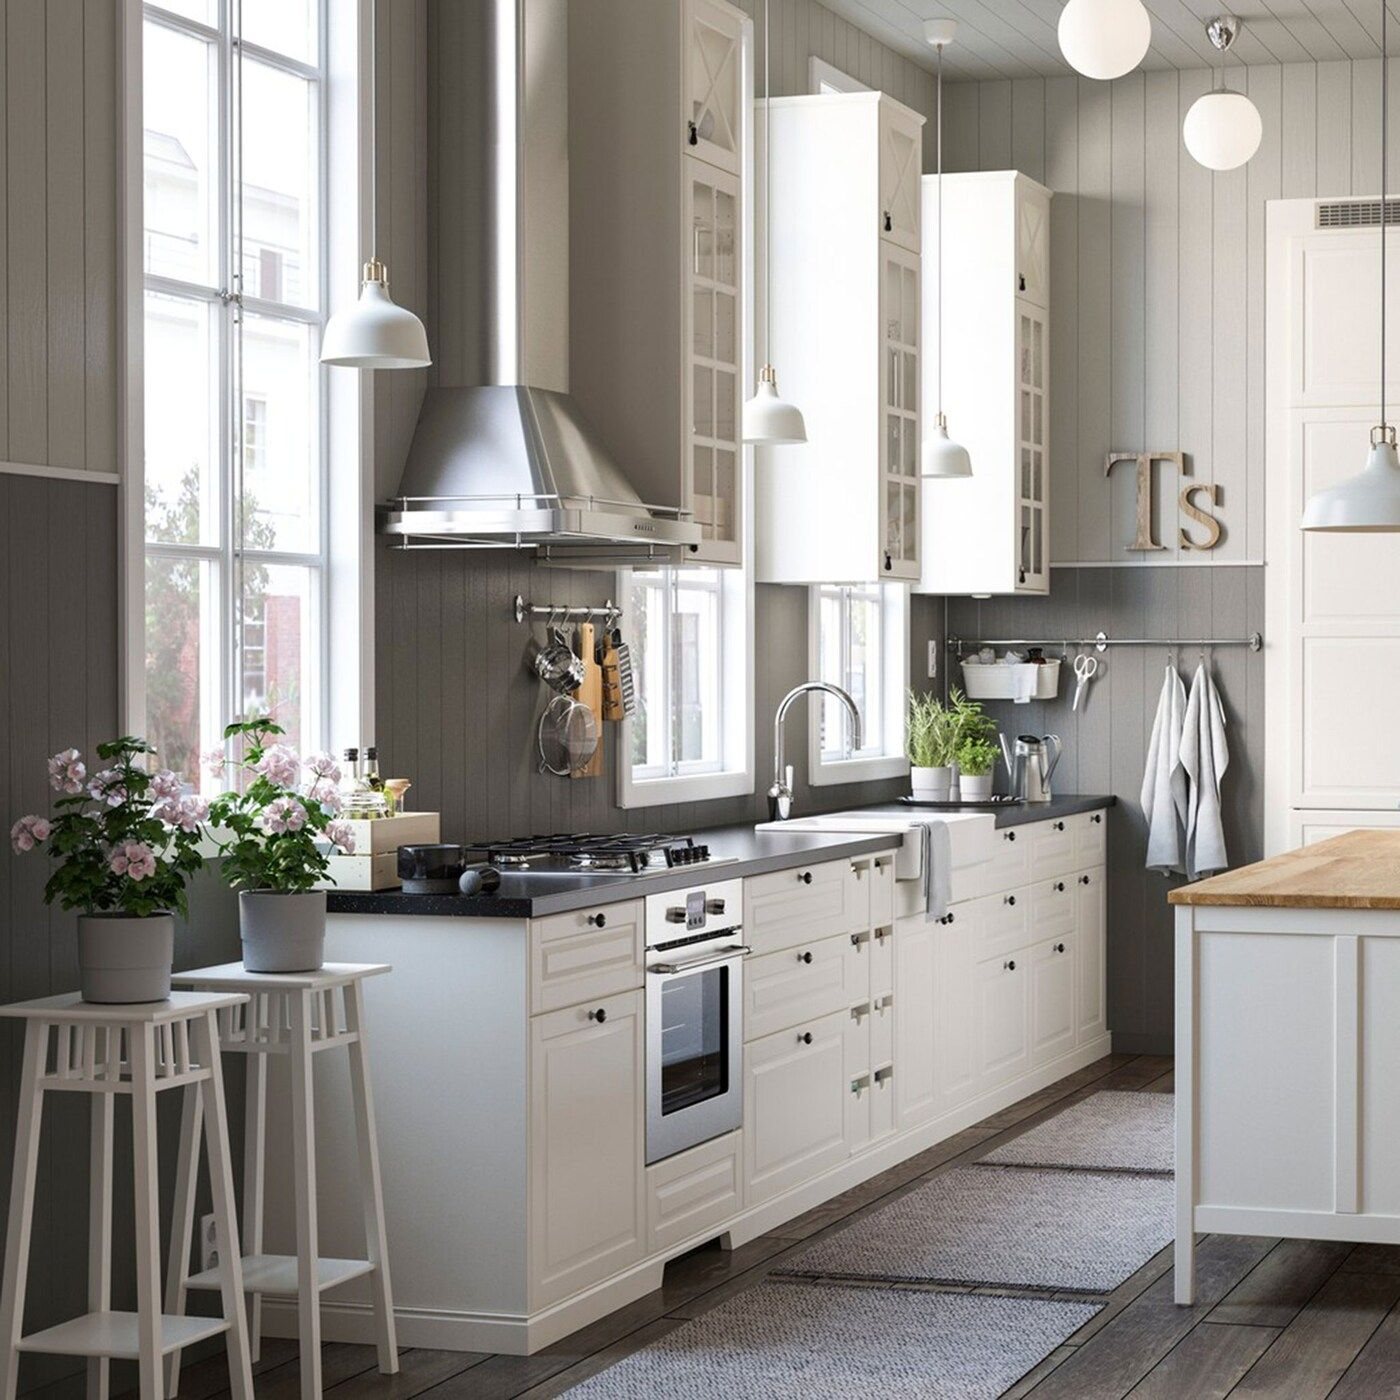 Countryside kitchen in the city in 2020 Freestanding